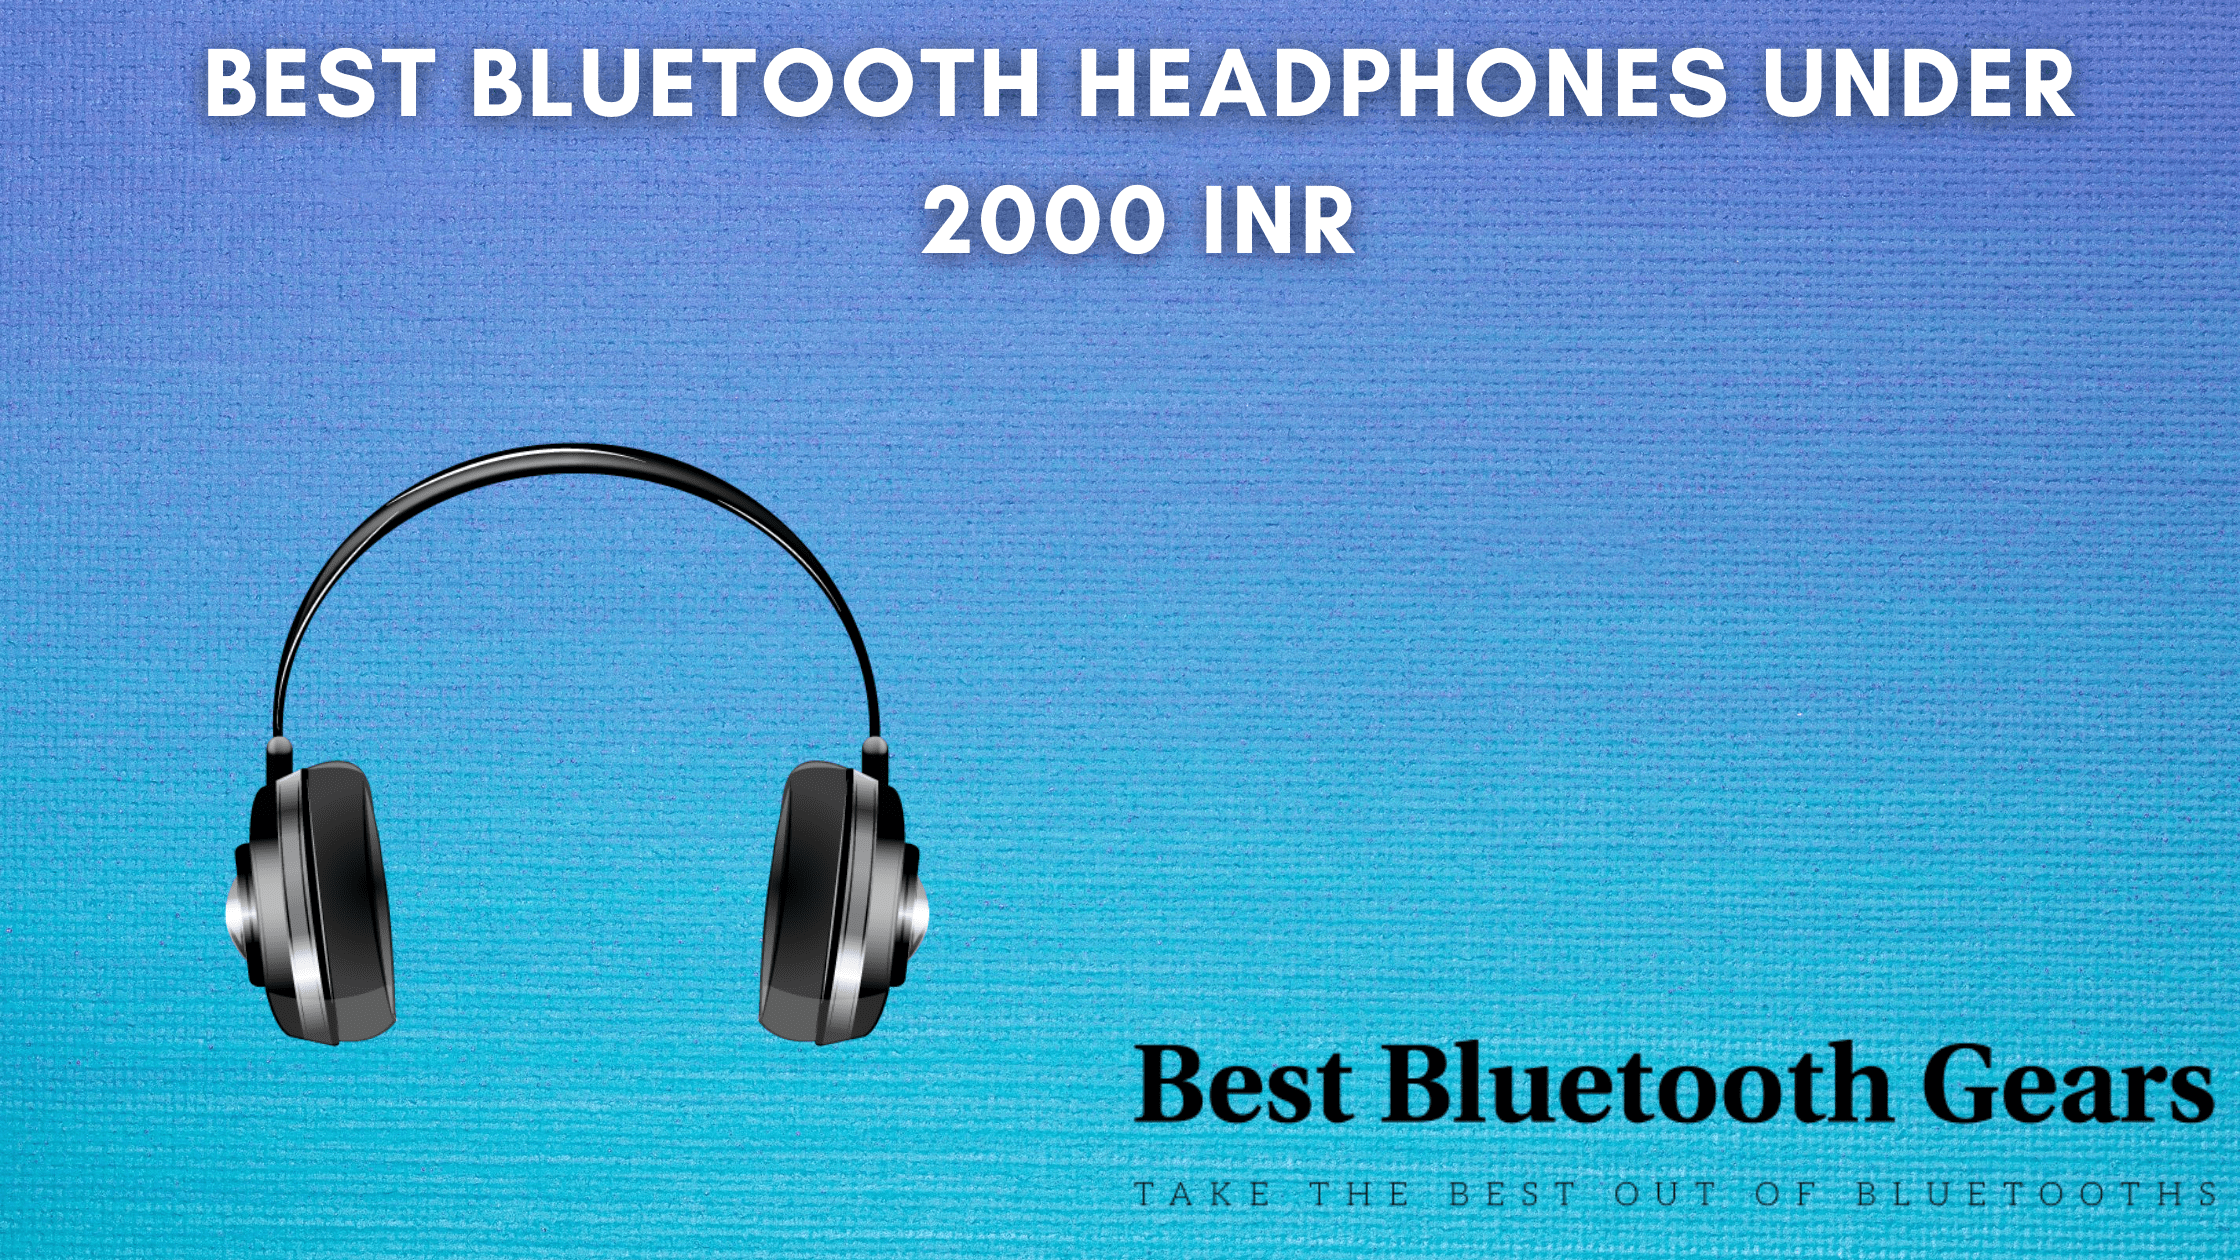 Top 10 Best Bluetooth Headphones Under 2000 Rs In 2020 Best Bluetooth Gears